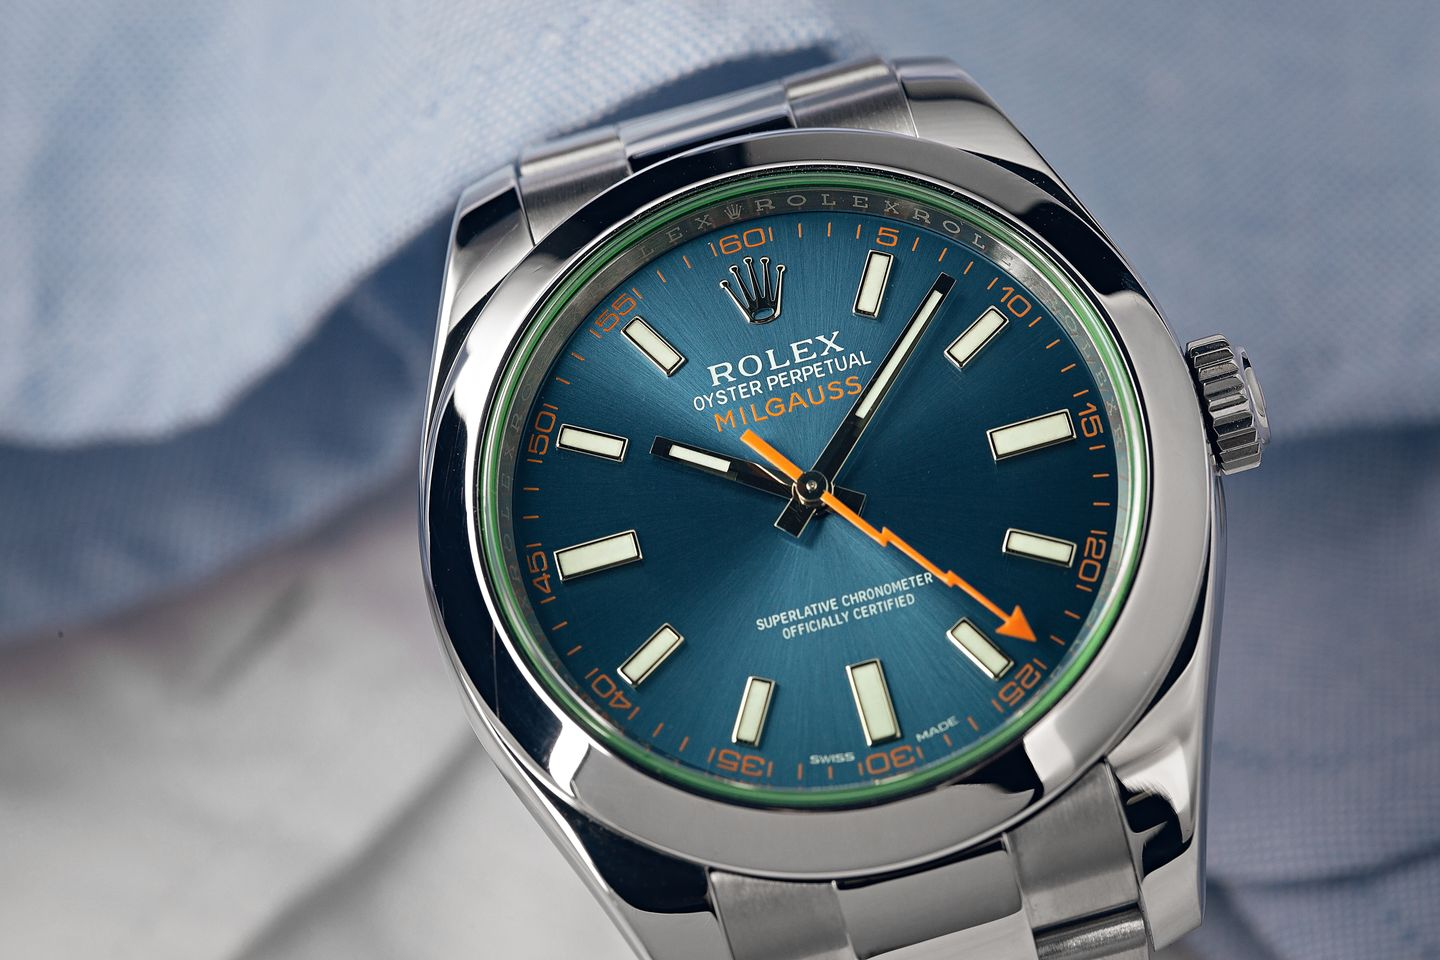 Antimagnetic Rolex Watches Milgauss 116400 vs Air-King 116900 Antimagnetic